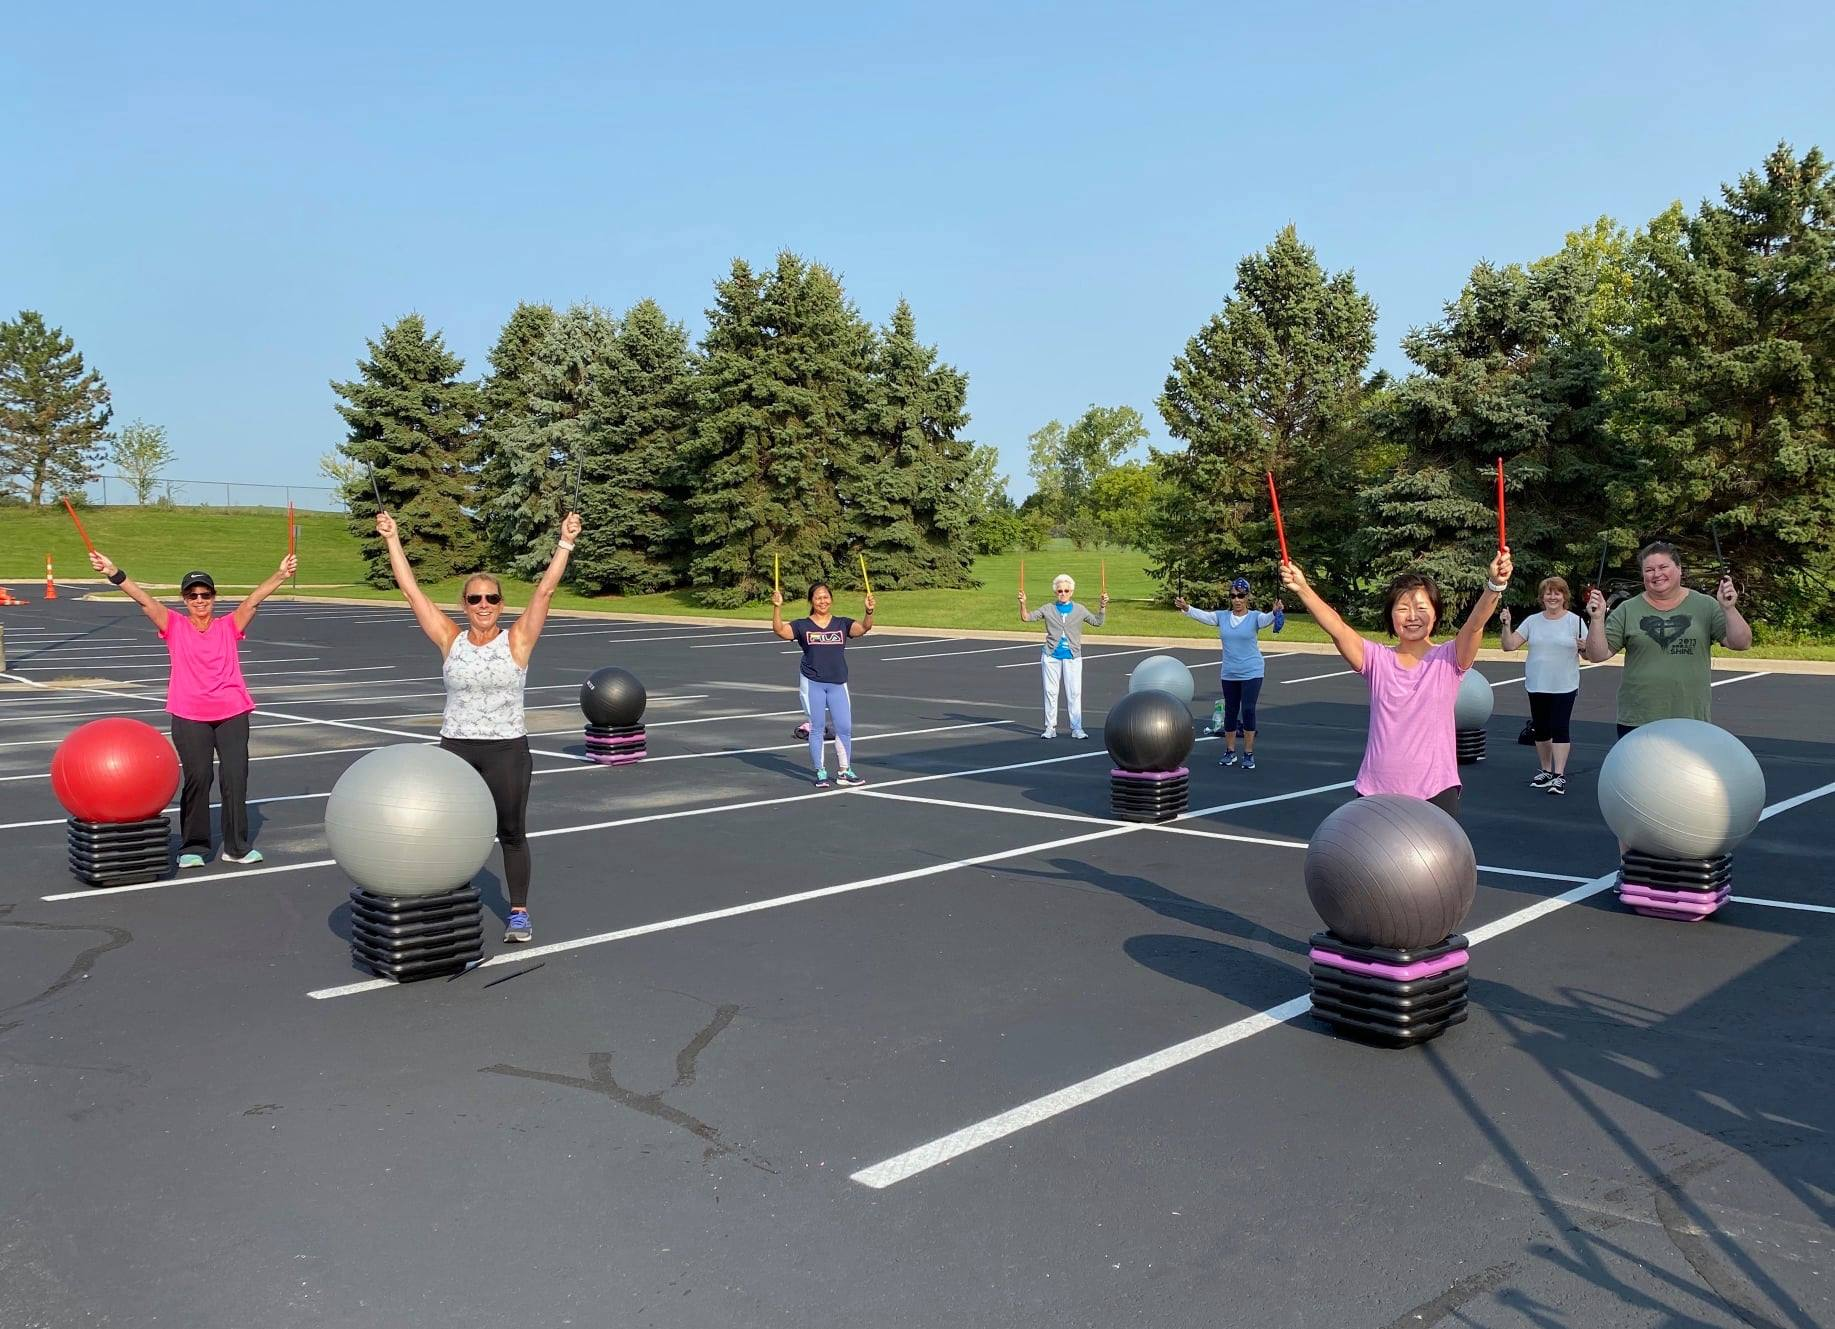 People taking part in a fitness class